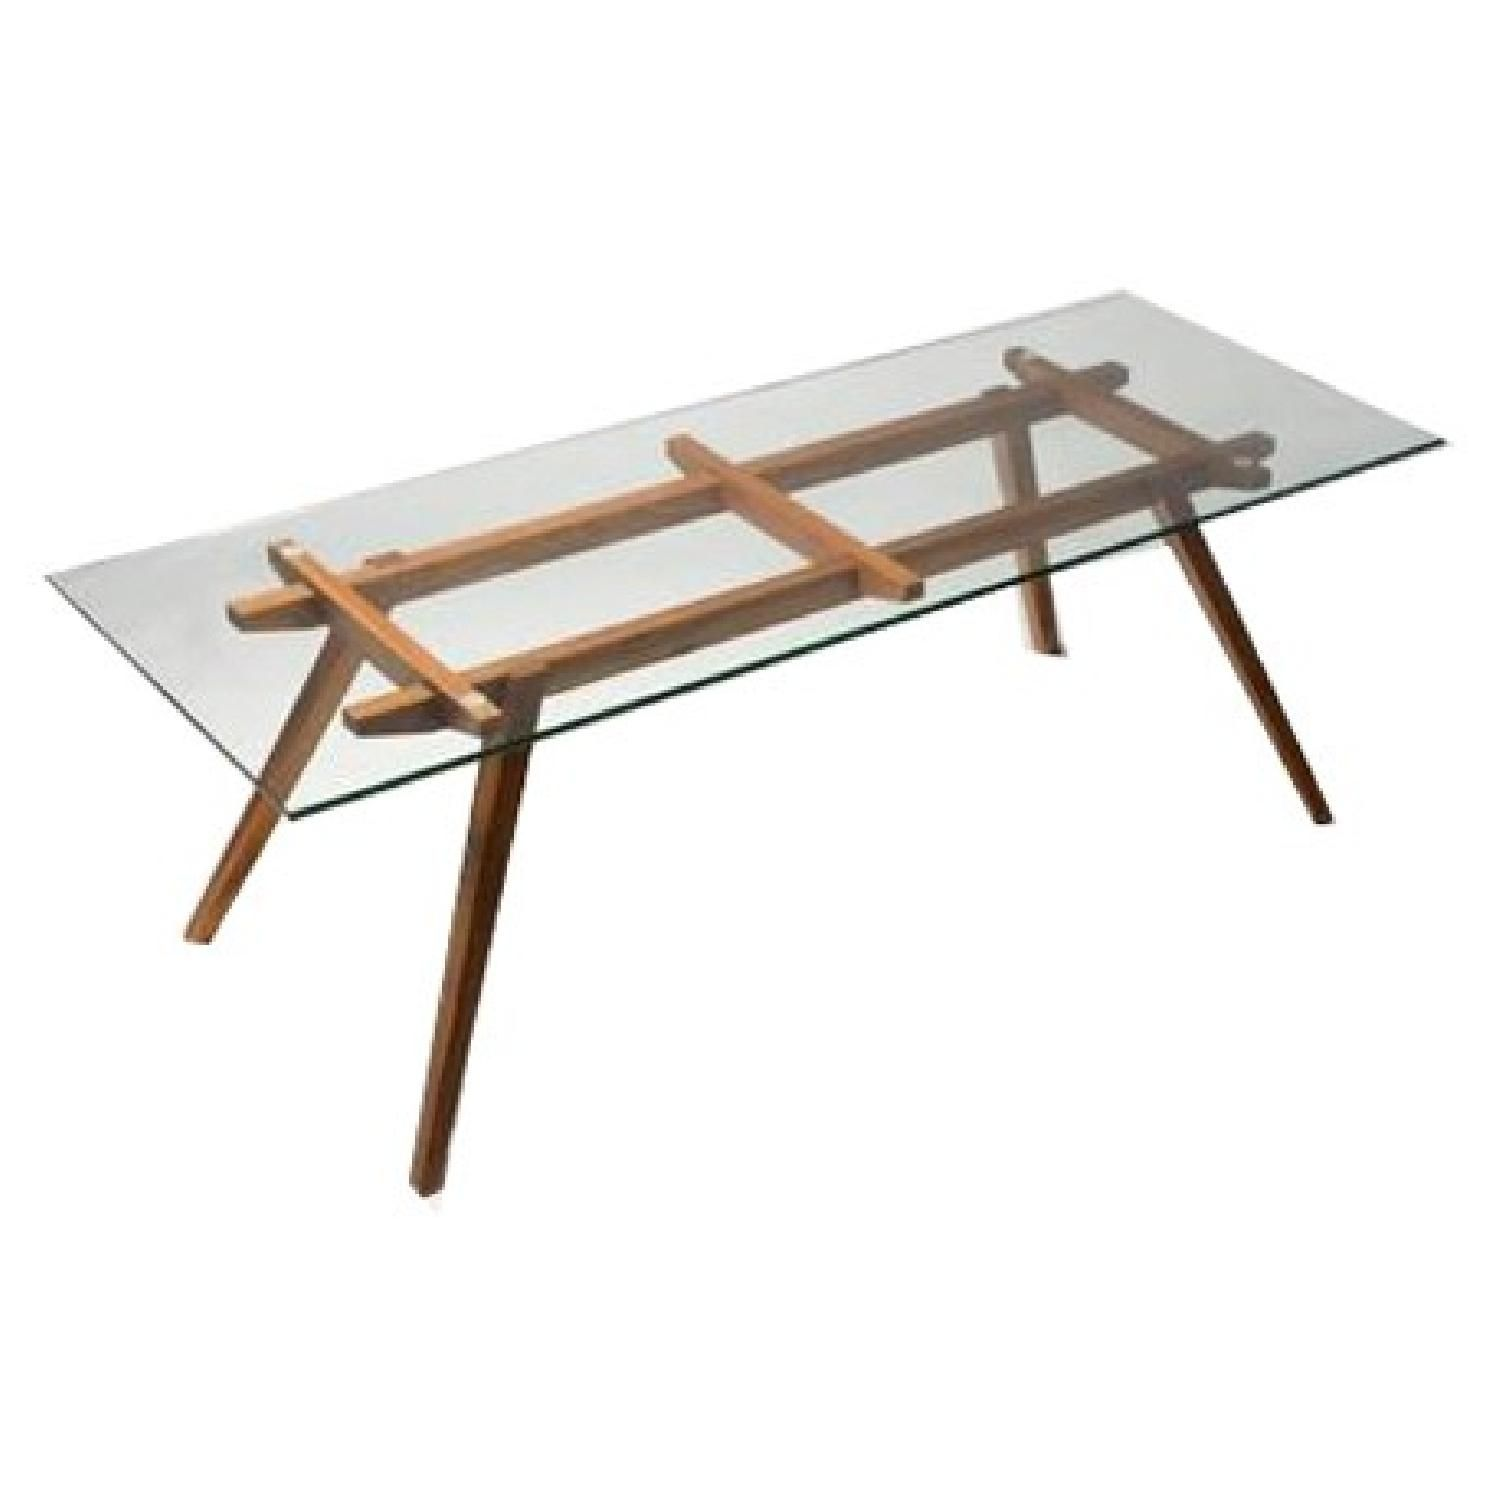 Metra extension dining table crate and barrel - Organic Modernism American Walnut Glass Top Dining Table